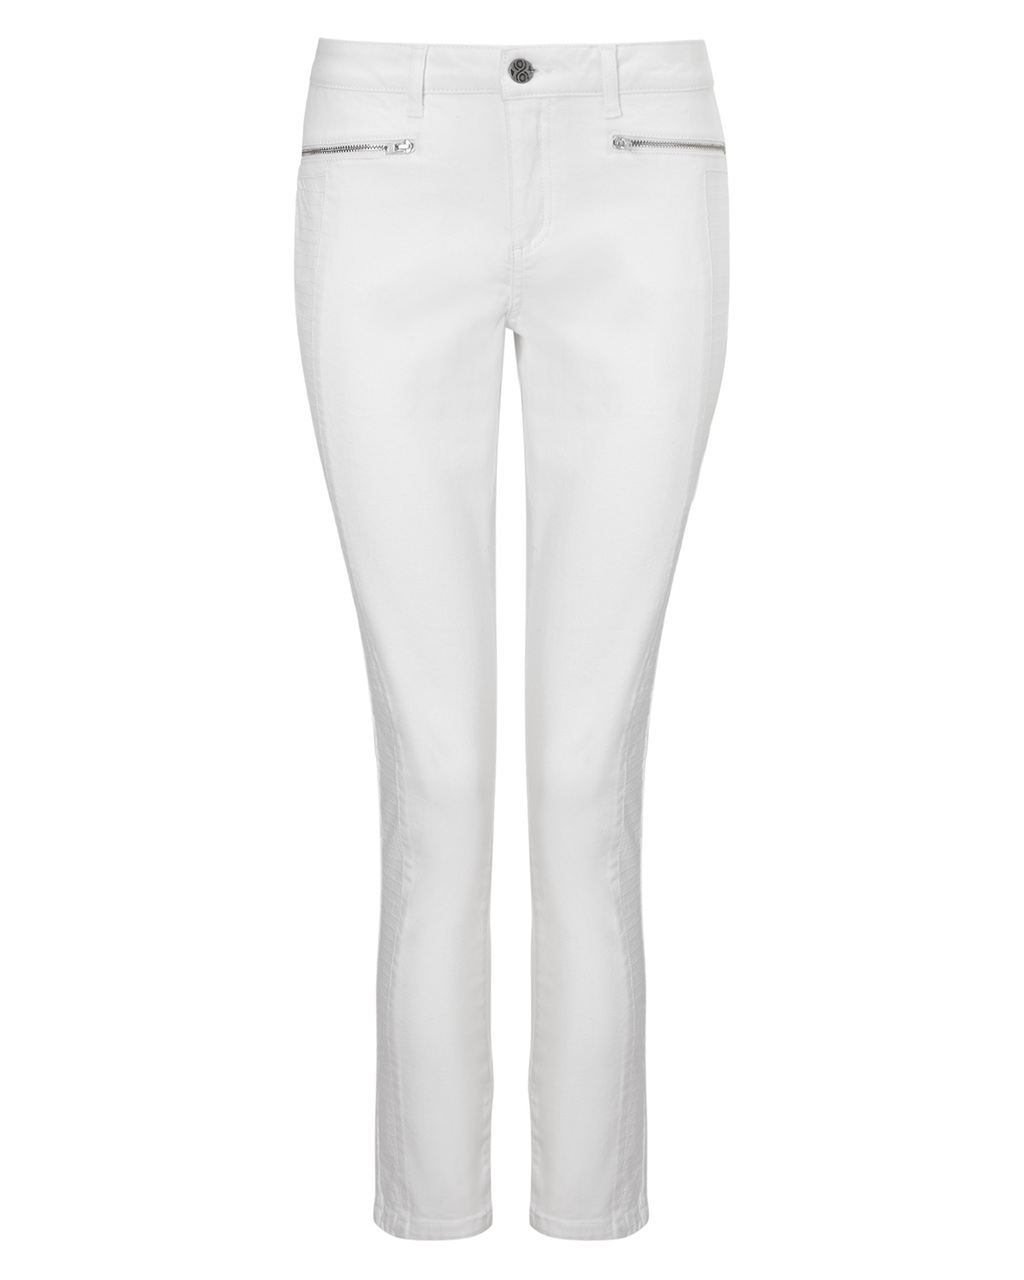 Victoria Seamed Jean - style: skinny leg; length: standard; pattern: plain; waist: mid/regular rise; predominant colour: white; occasions: casual, creative work; fibres: cotton - stretch; texture group: denim; pattern type: fabric; season: s/s 2015; wardrobe: highlight